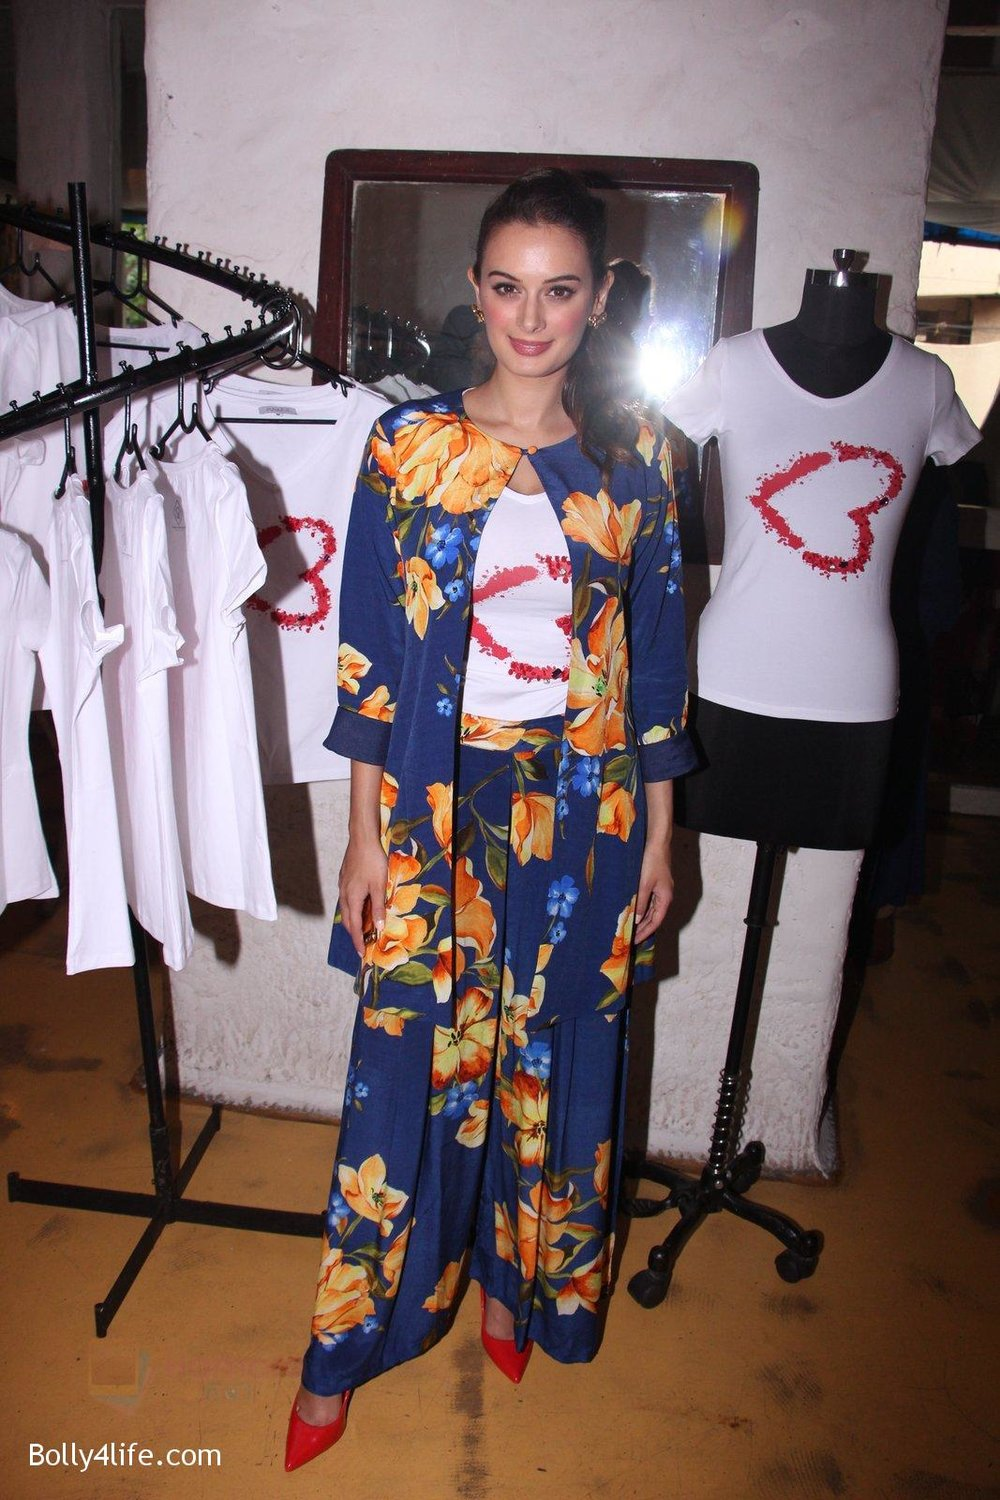 Evelyn-Sharma-host-3rd-Garage-Sale-of-Seams-for-Dreams-an-Initiative-on-4th-Oct-2016-7.jpg